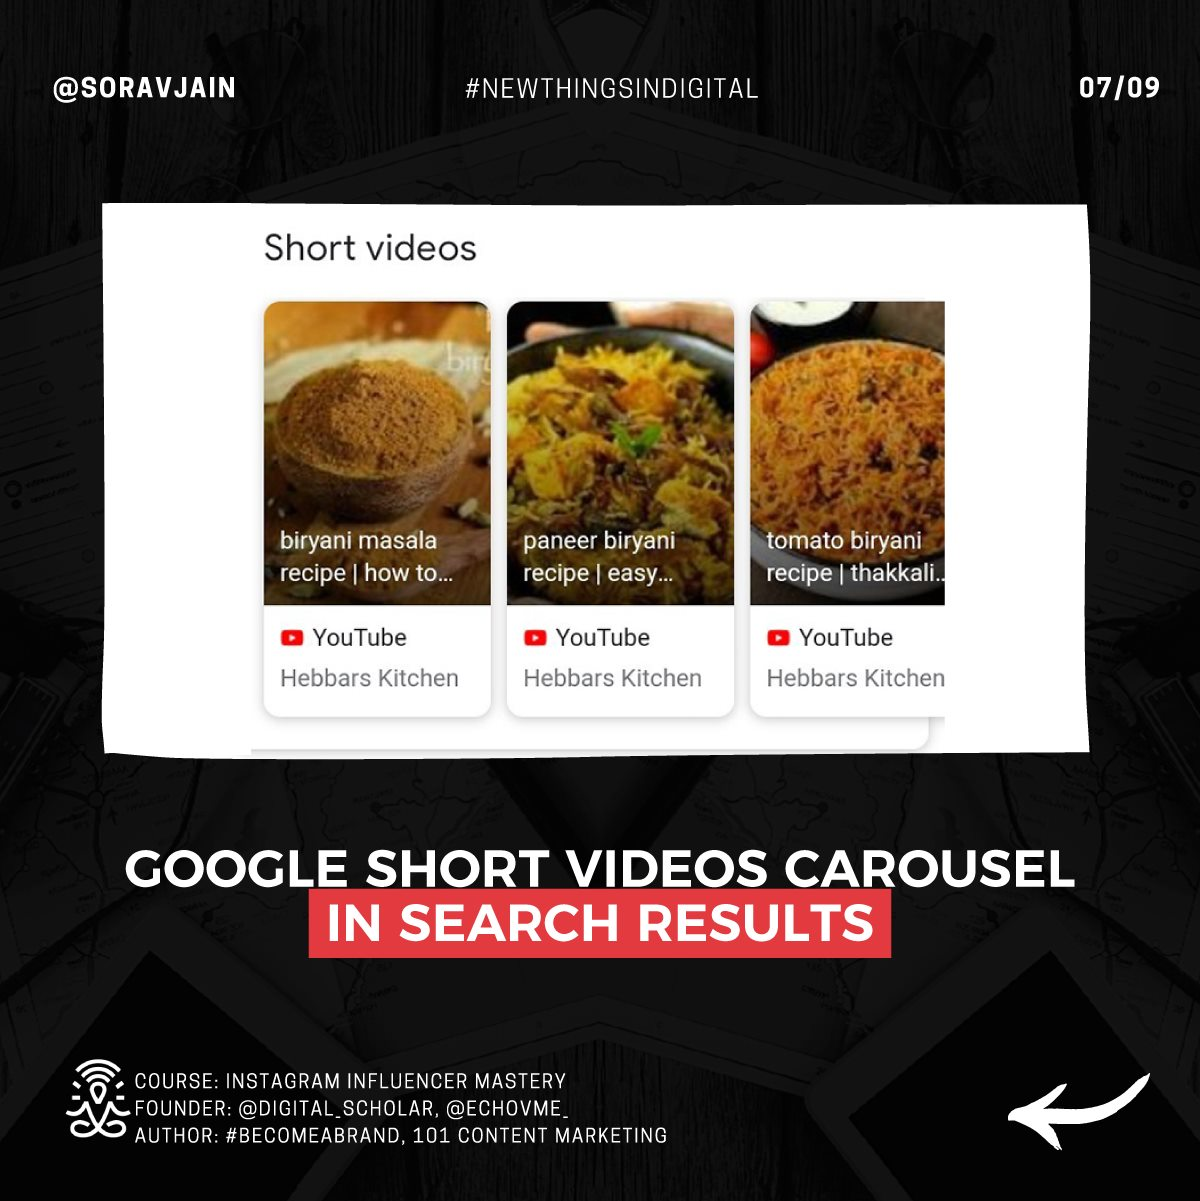 Google Short Videos Carousel In Search Results